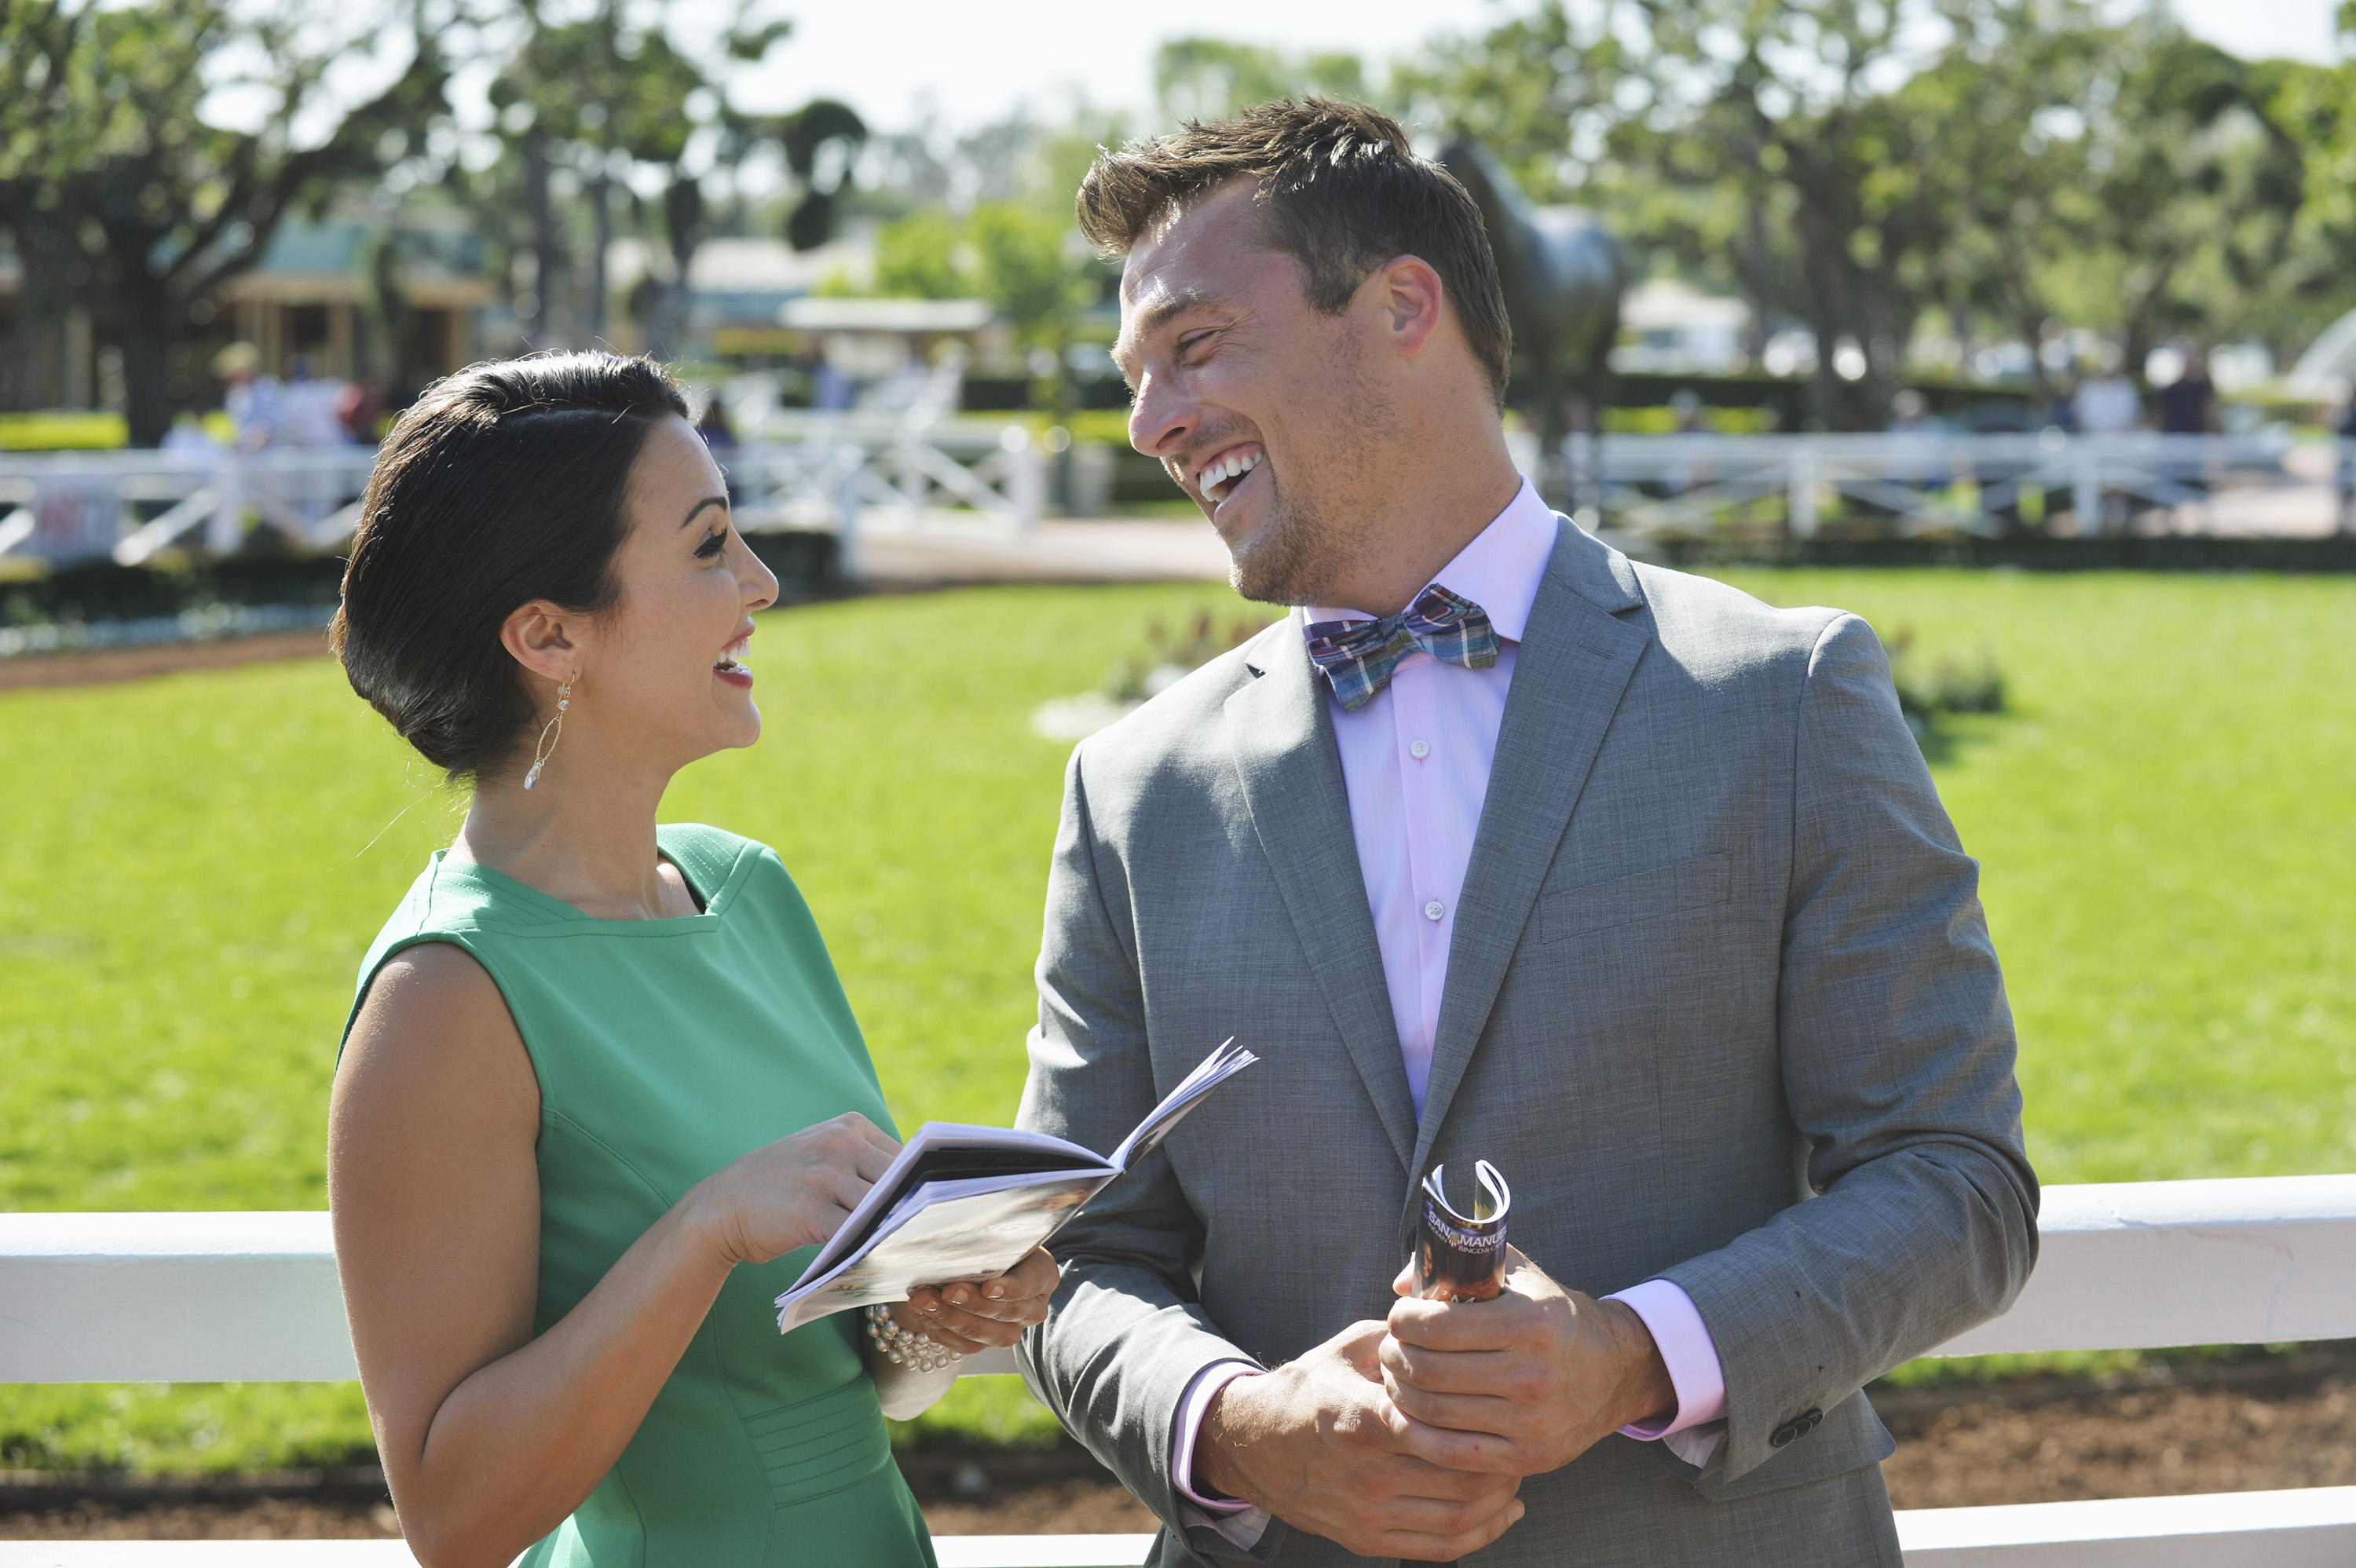 THE BACHELORETTE -  Episode 1002  - Andi treats Chris to a glamorous day of horse racing at Santa Anita Park, as the couple gets decked out in outfits reminiscent of the 1940's. They settle into their VIP seats with mint juleps and binoculars ready to see if their bets pay off. That night, they enjoy a special evening, slow dancing to the songs of  This Wild Life  during a private concert. Does this mean their relationship is on a fast track? - on  The Bachelorette,  MONDAY, MAY 26 (8:00-10:01p.m., ET) on the ABC Television Network. (Photo by Todd Wawrychuk/ABC via Getty Images)